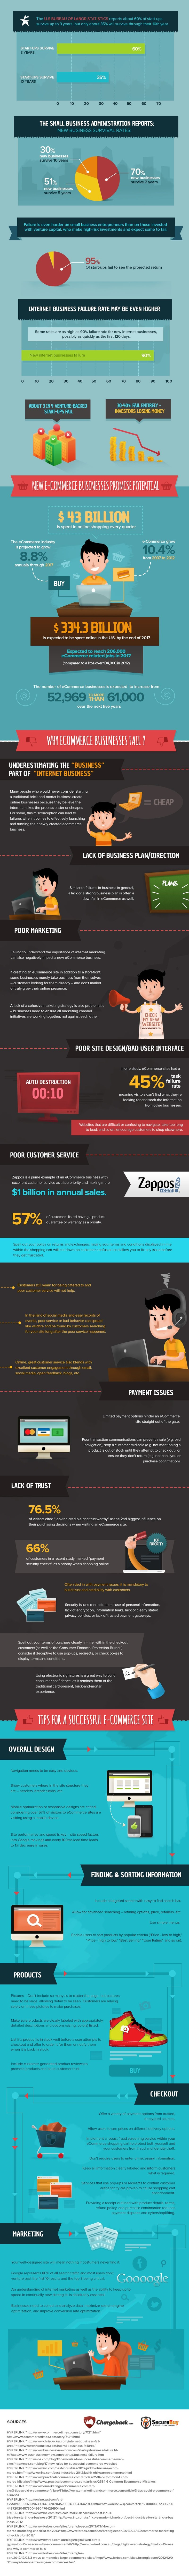 avoiding-the-pitfalls-of-ecommerce-infographic_-_Copy